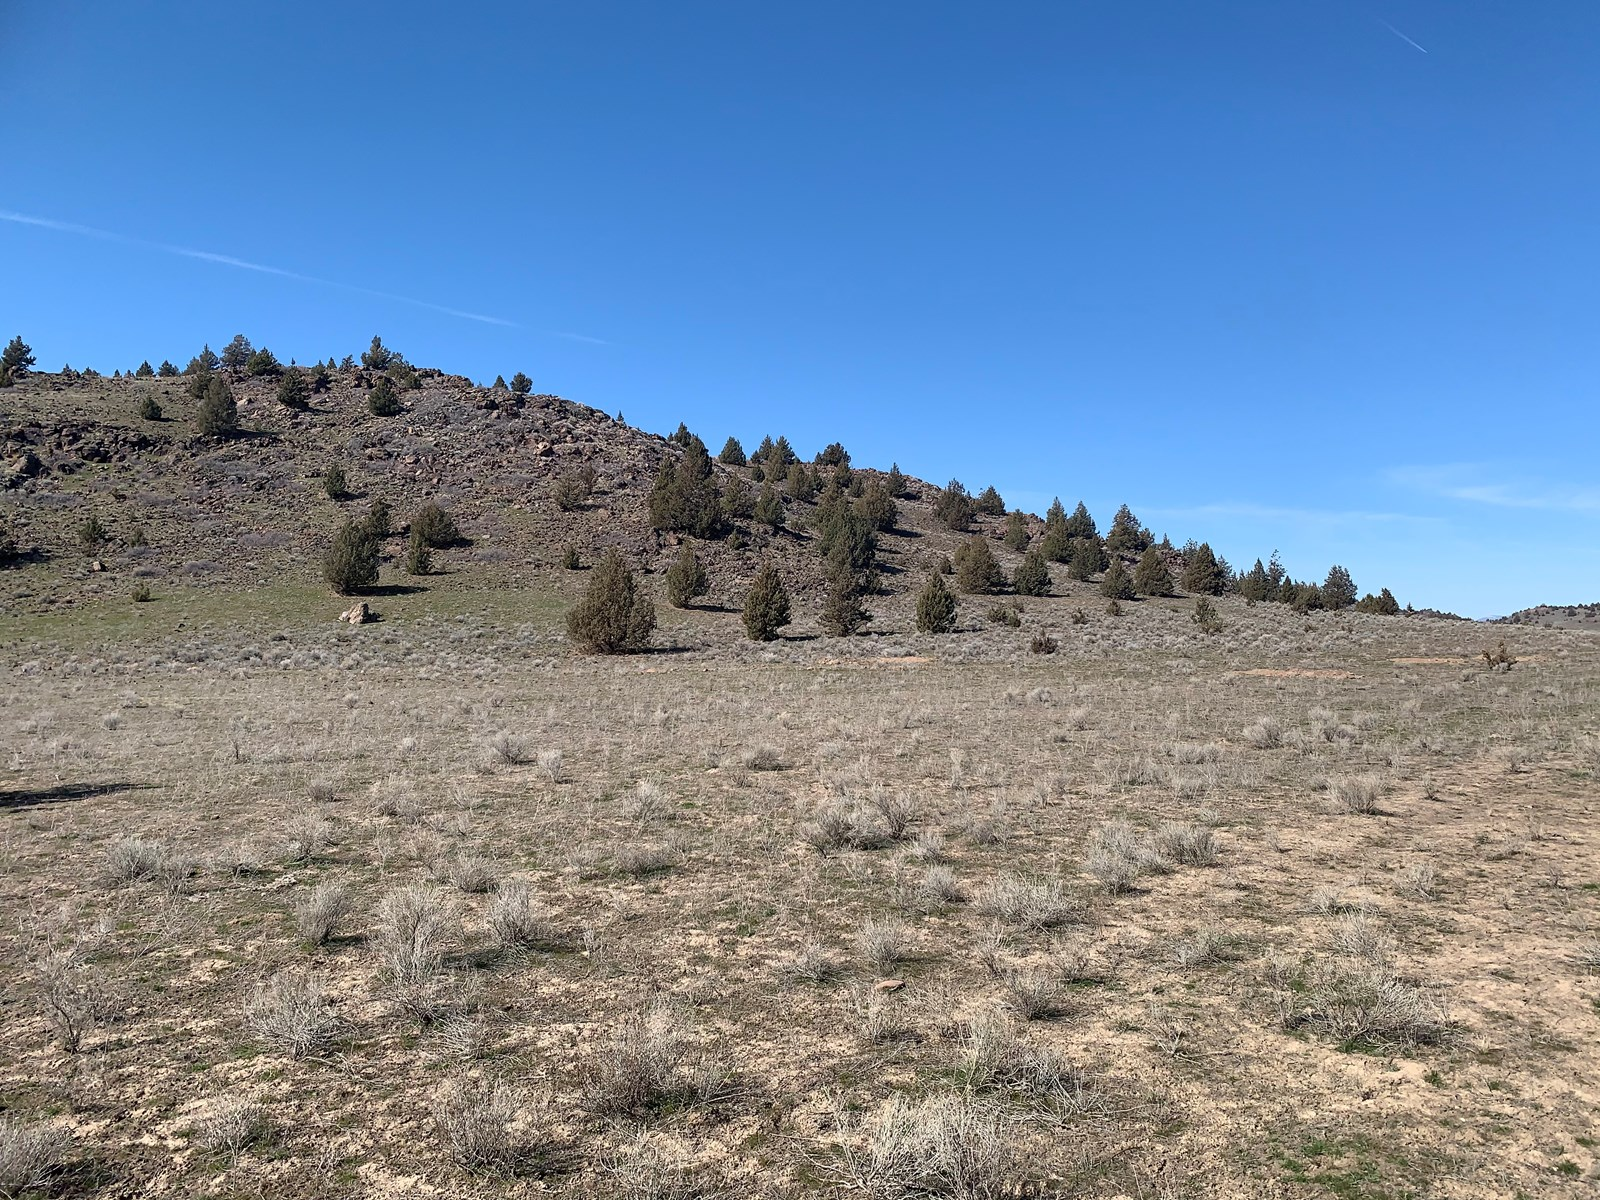 47 Acres for Sale in Siskiyou County